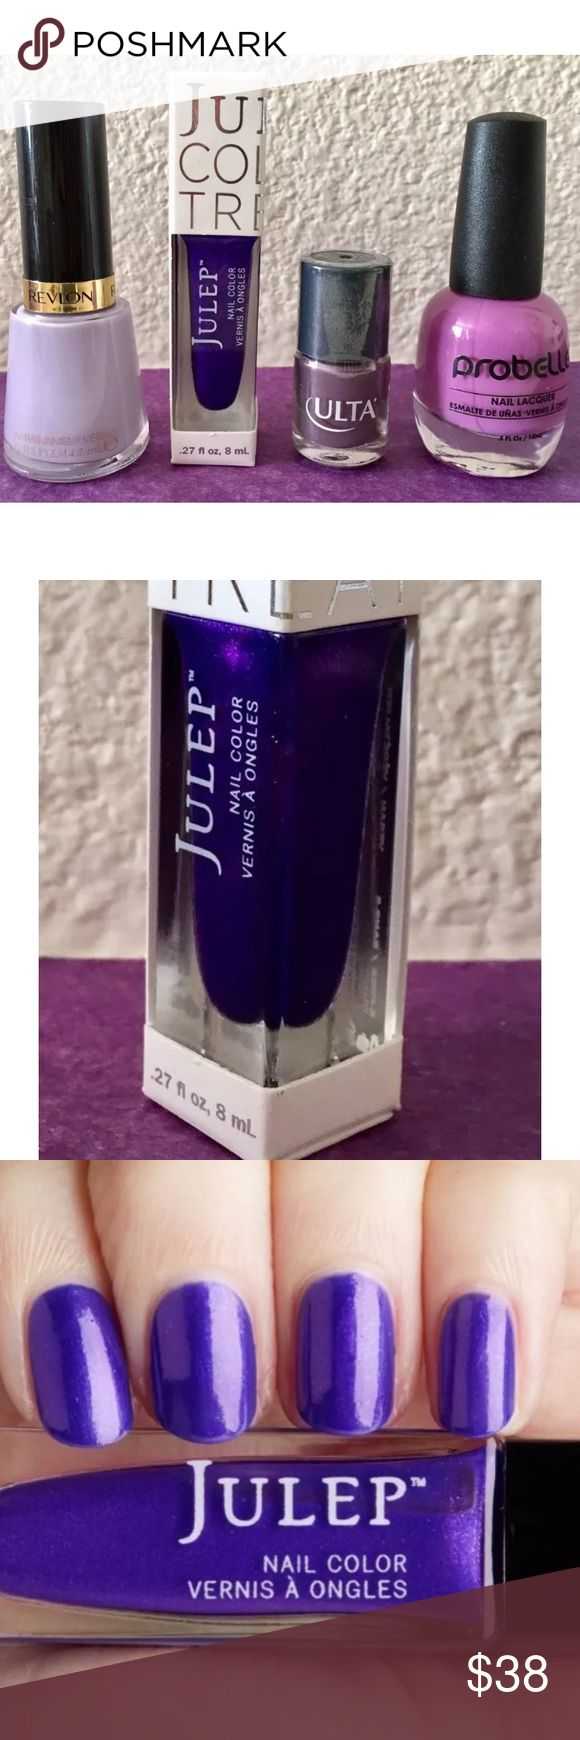 Pretty Purples Nail Polish Bundle 4 pretty purple nail polishes from various popular brands. Brand new, unused, unopened. Smoke-free, clean home.  • Full-size Julep Nail Color in Madelynn - It Girl: Imperial purple shimmer (8mL/.27 fl.oz.) • Full-size Probelle Nail Lacquer in In or Out: A bright, creamy purple (15mL/.5 fl.oz.) • Full-size Revlon Nail Enamel in Charming: A soft, pastel lilac purple (14.7mL/.5 fl.oz.) • Travel-size ULTA Nail Polish in Aubergine Queen: A cool eggplant gray…